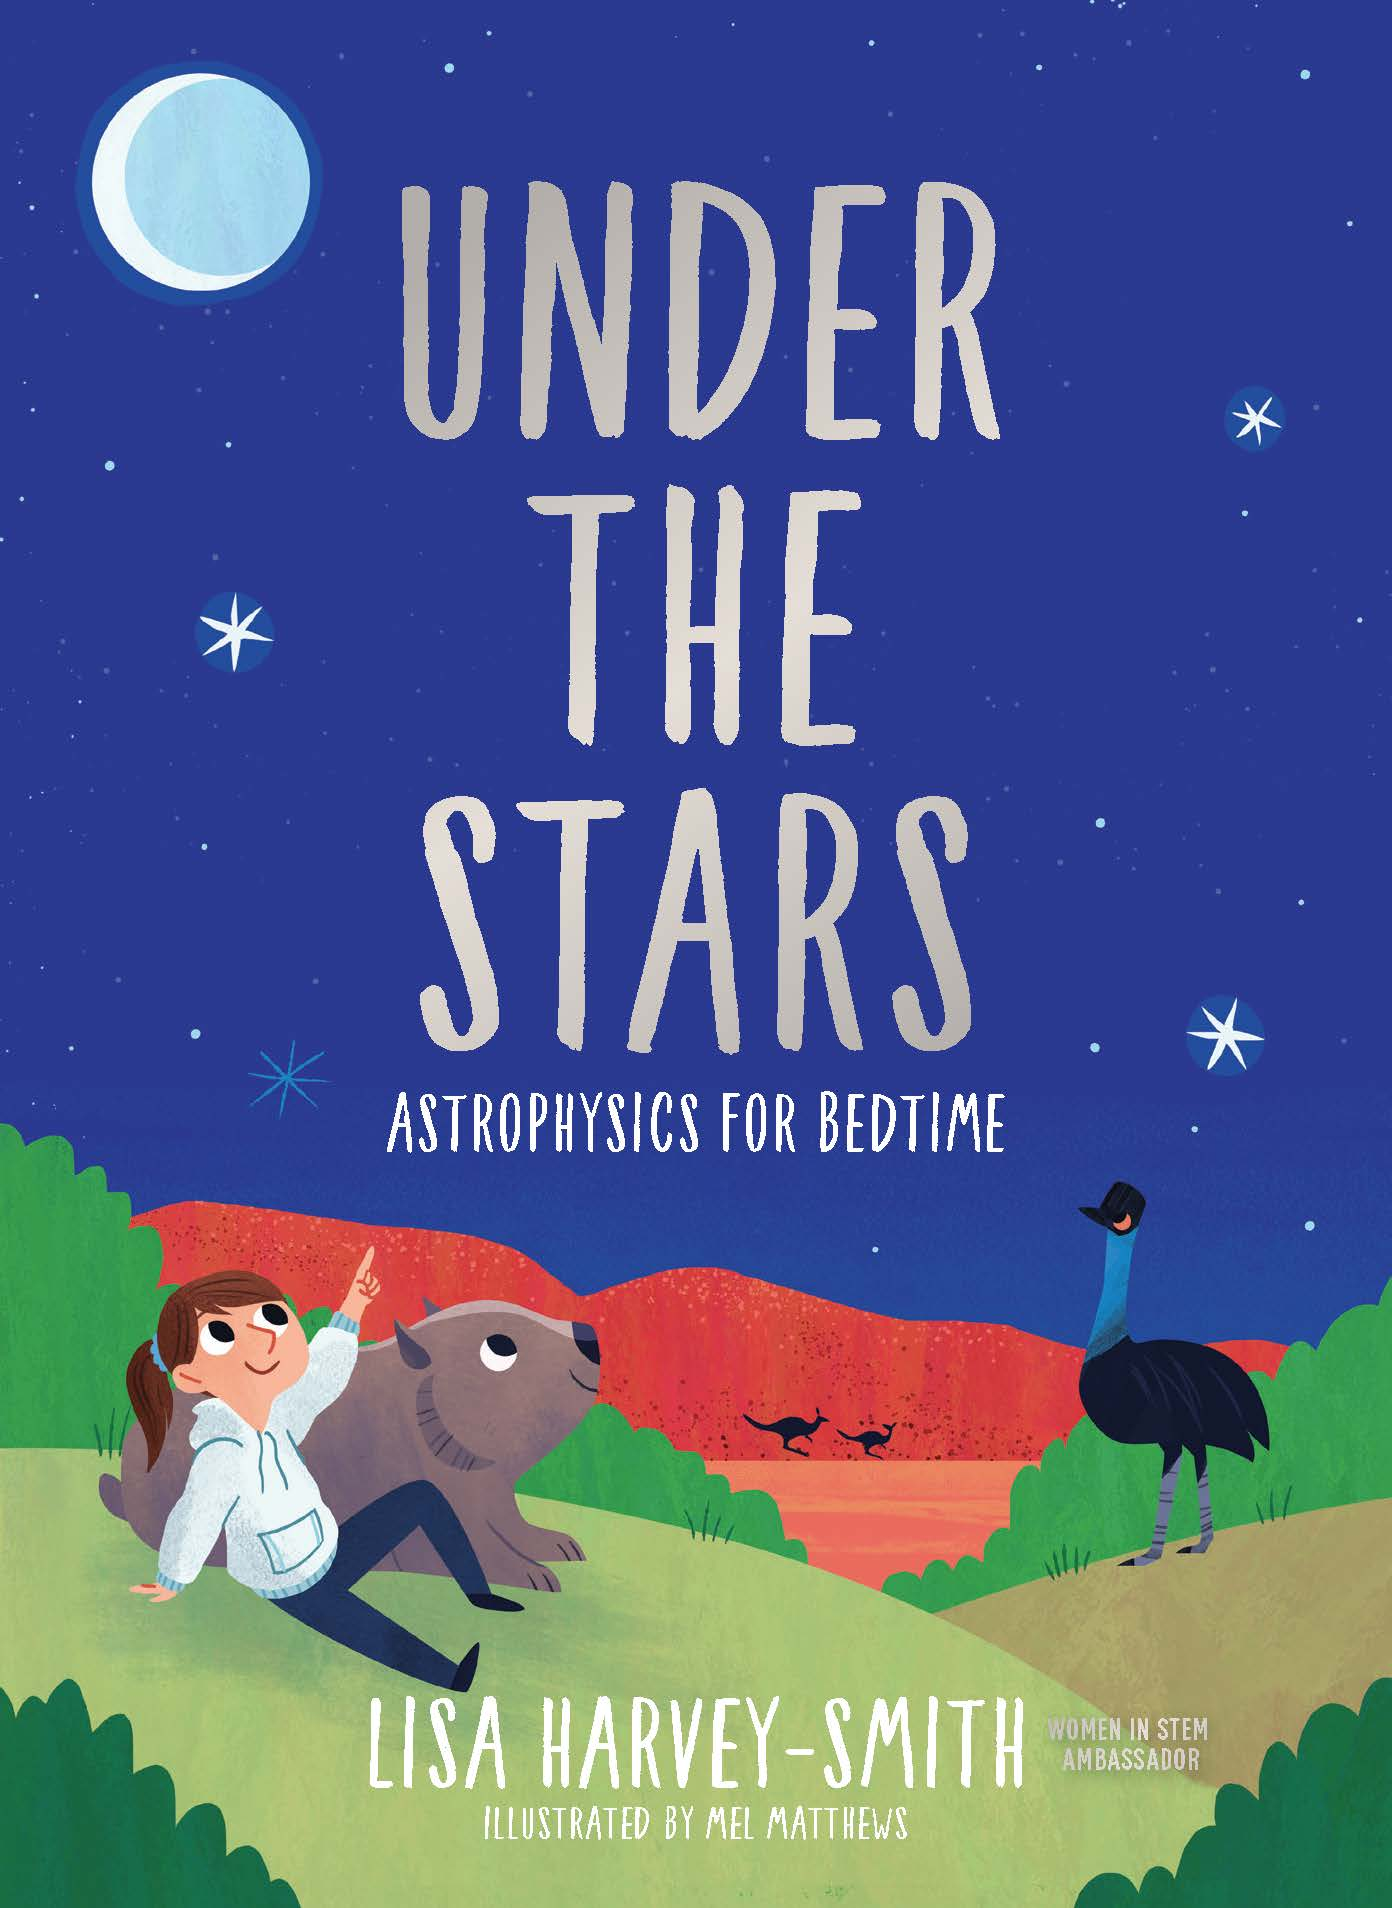 Q & A With Professor Lisa Harvey-Smith author of Under the Stars: Astrophysics for Bedtime